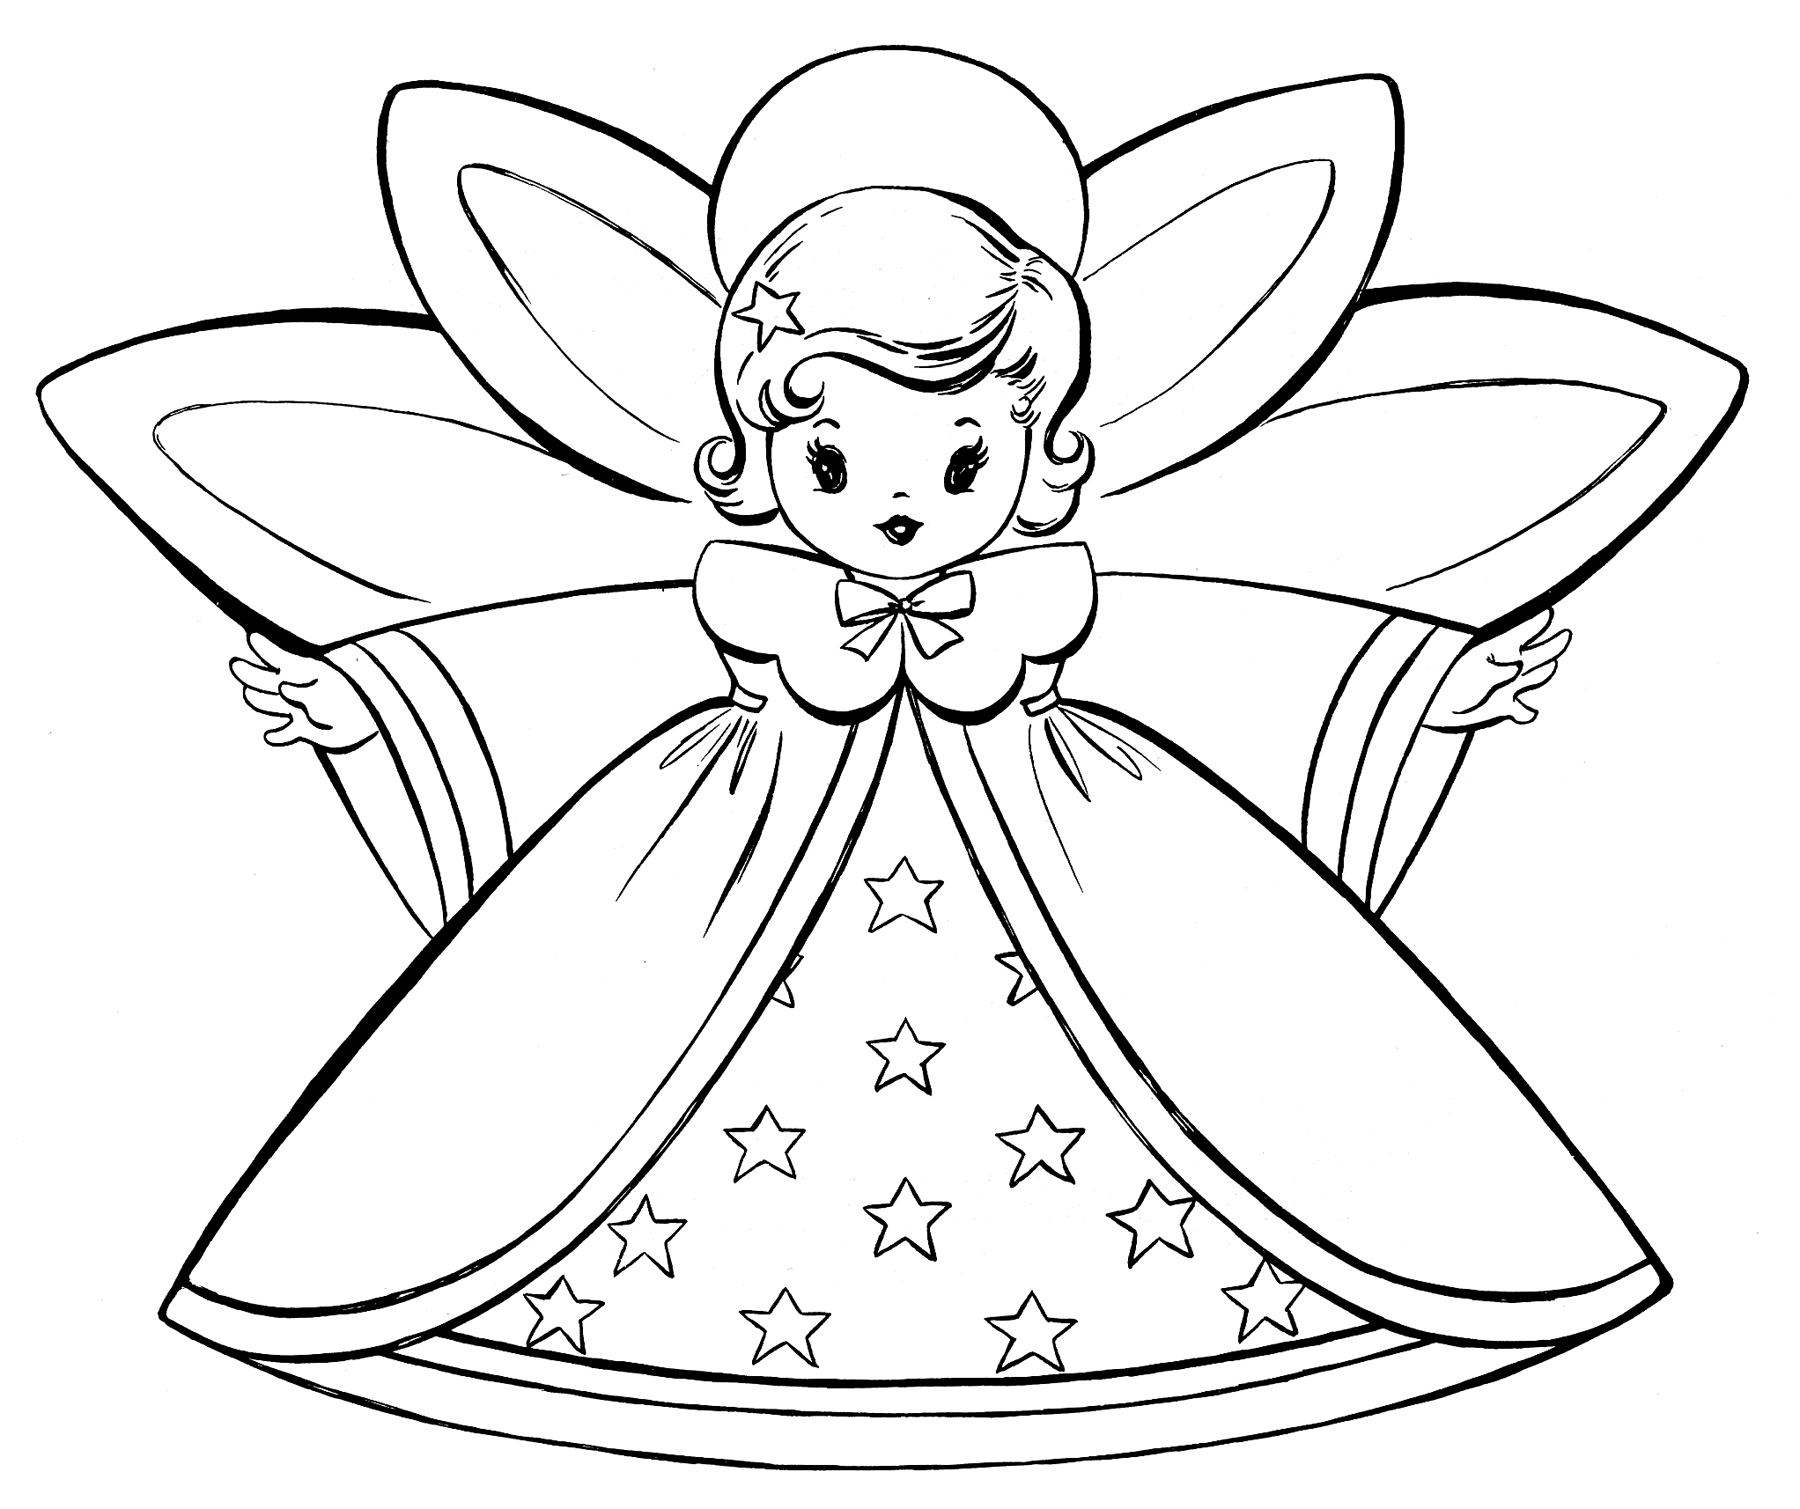 1800x1509 Angel Coloring Pages For Girls Colouring In Sweet Draw Print